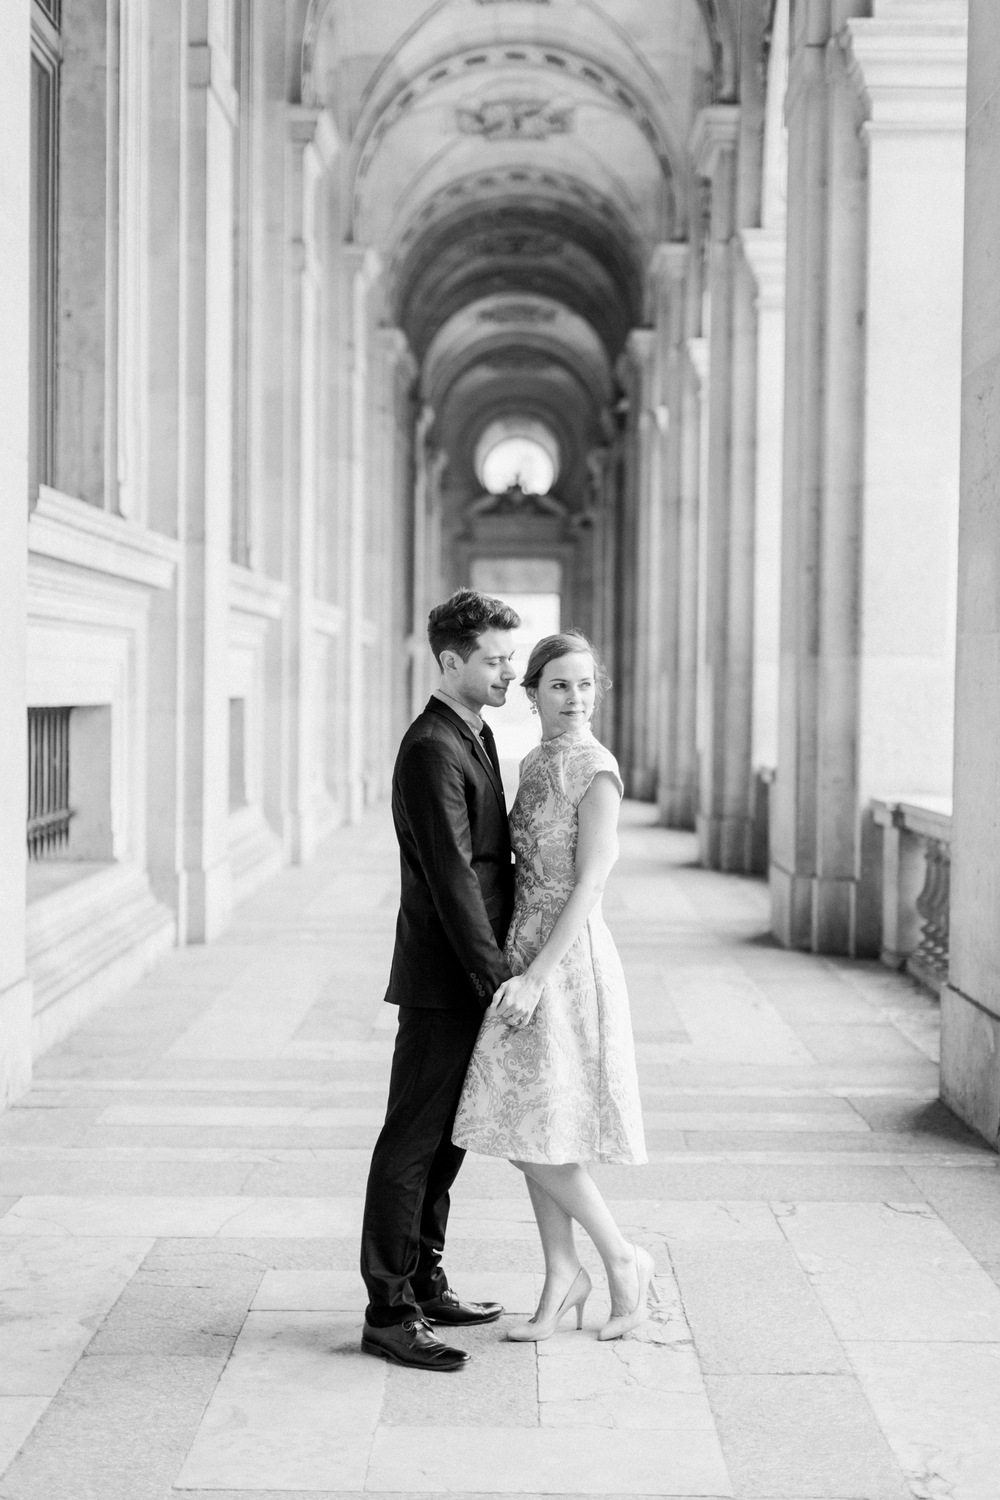 Paris-France-Wedding-Photography-Chloe-Luka-Photography_7682.jpg